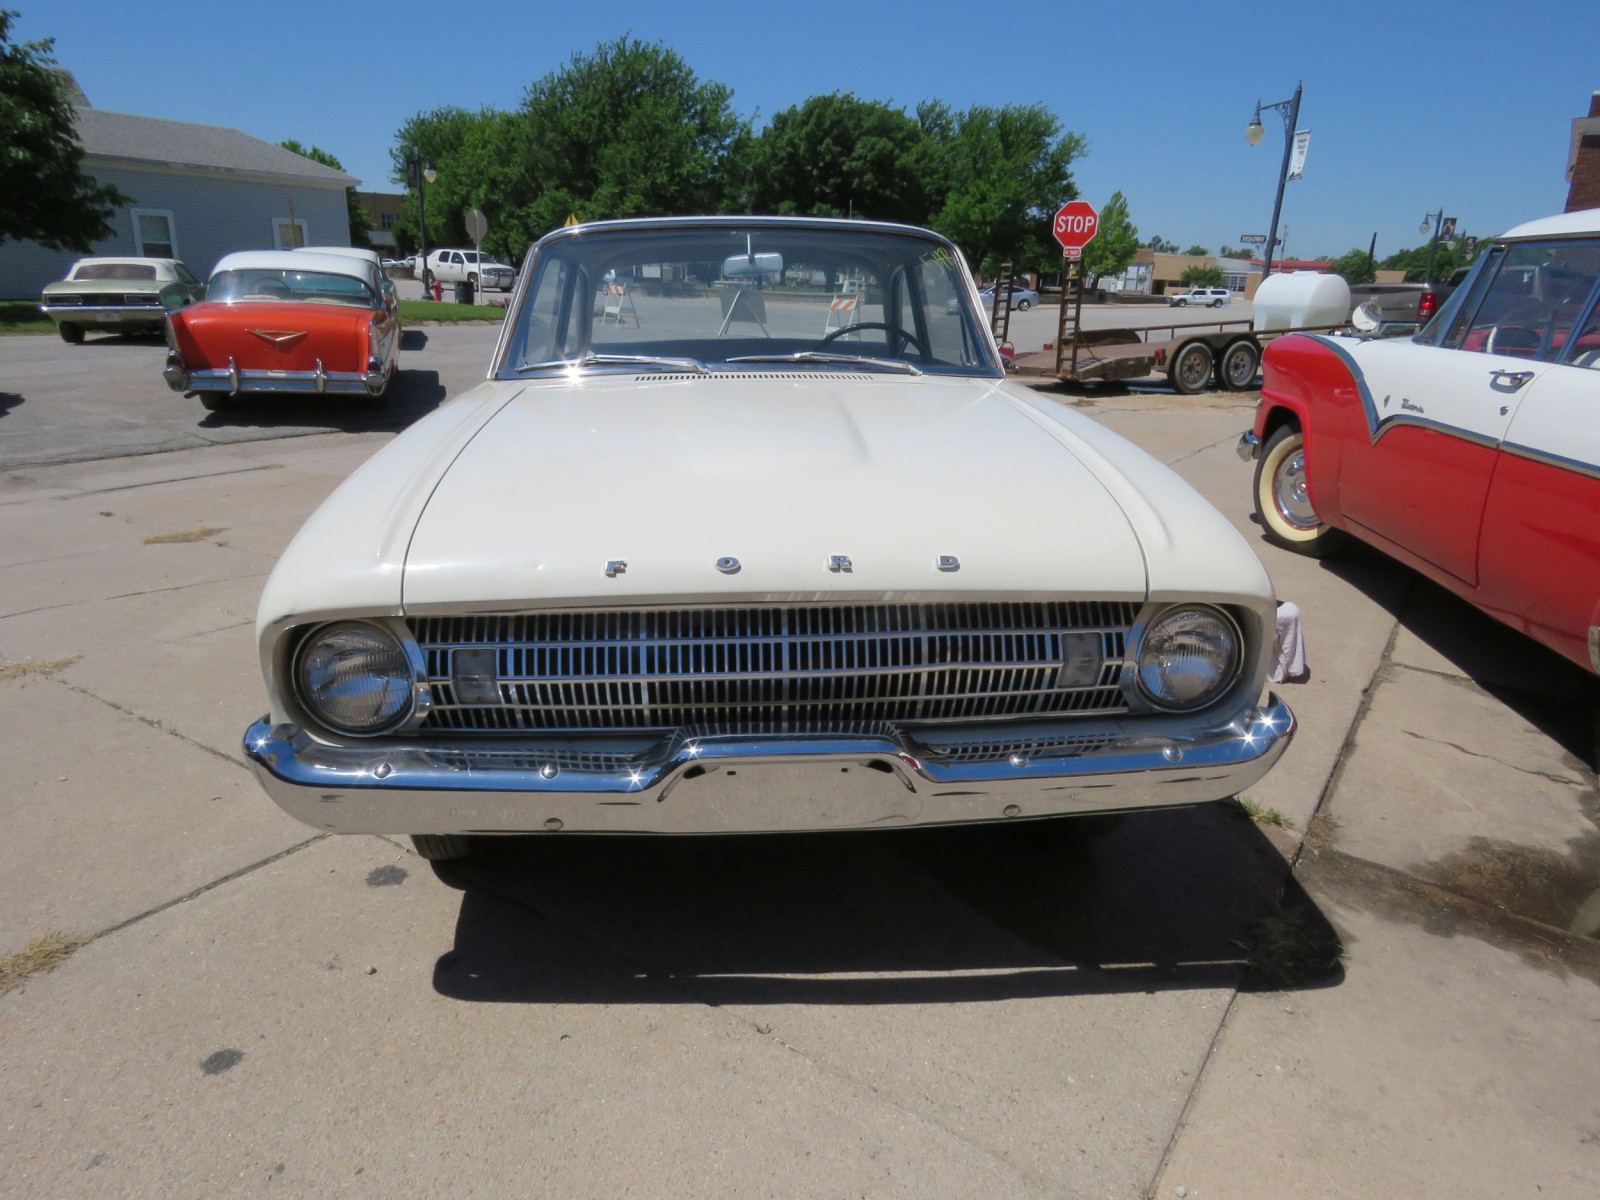 1961 FORD FALCON 2DR SEDAN LESS THAN 10,000 MILES - Image 2